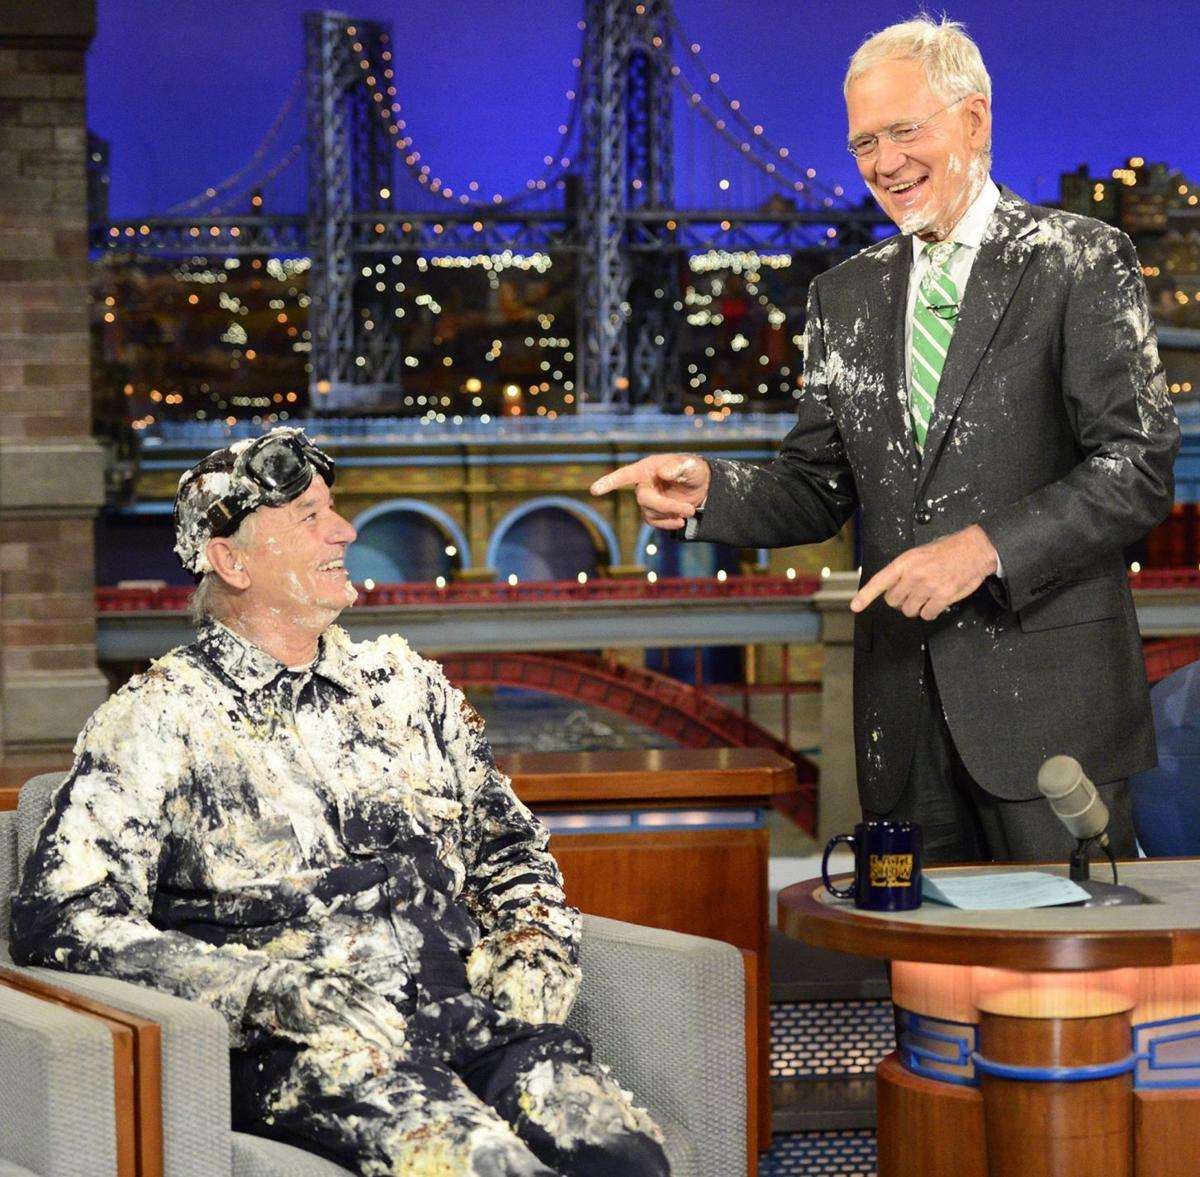 Bill Murray pops out of a cake to say goodbye to David Letterman on 'Late Show'